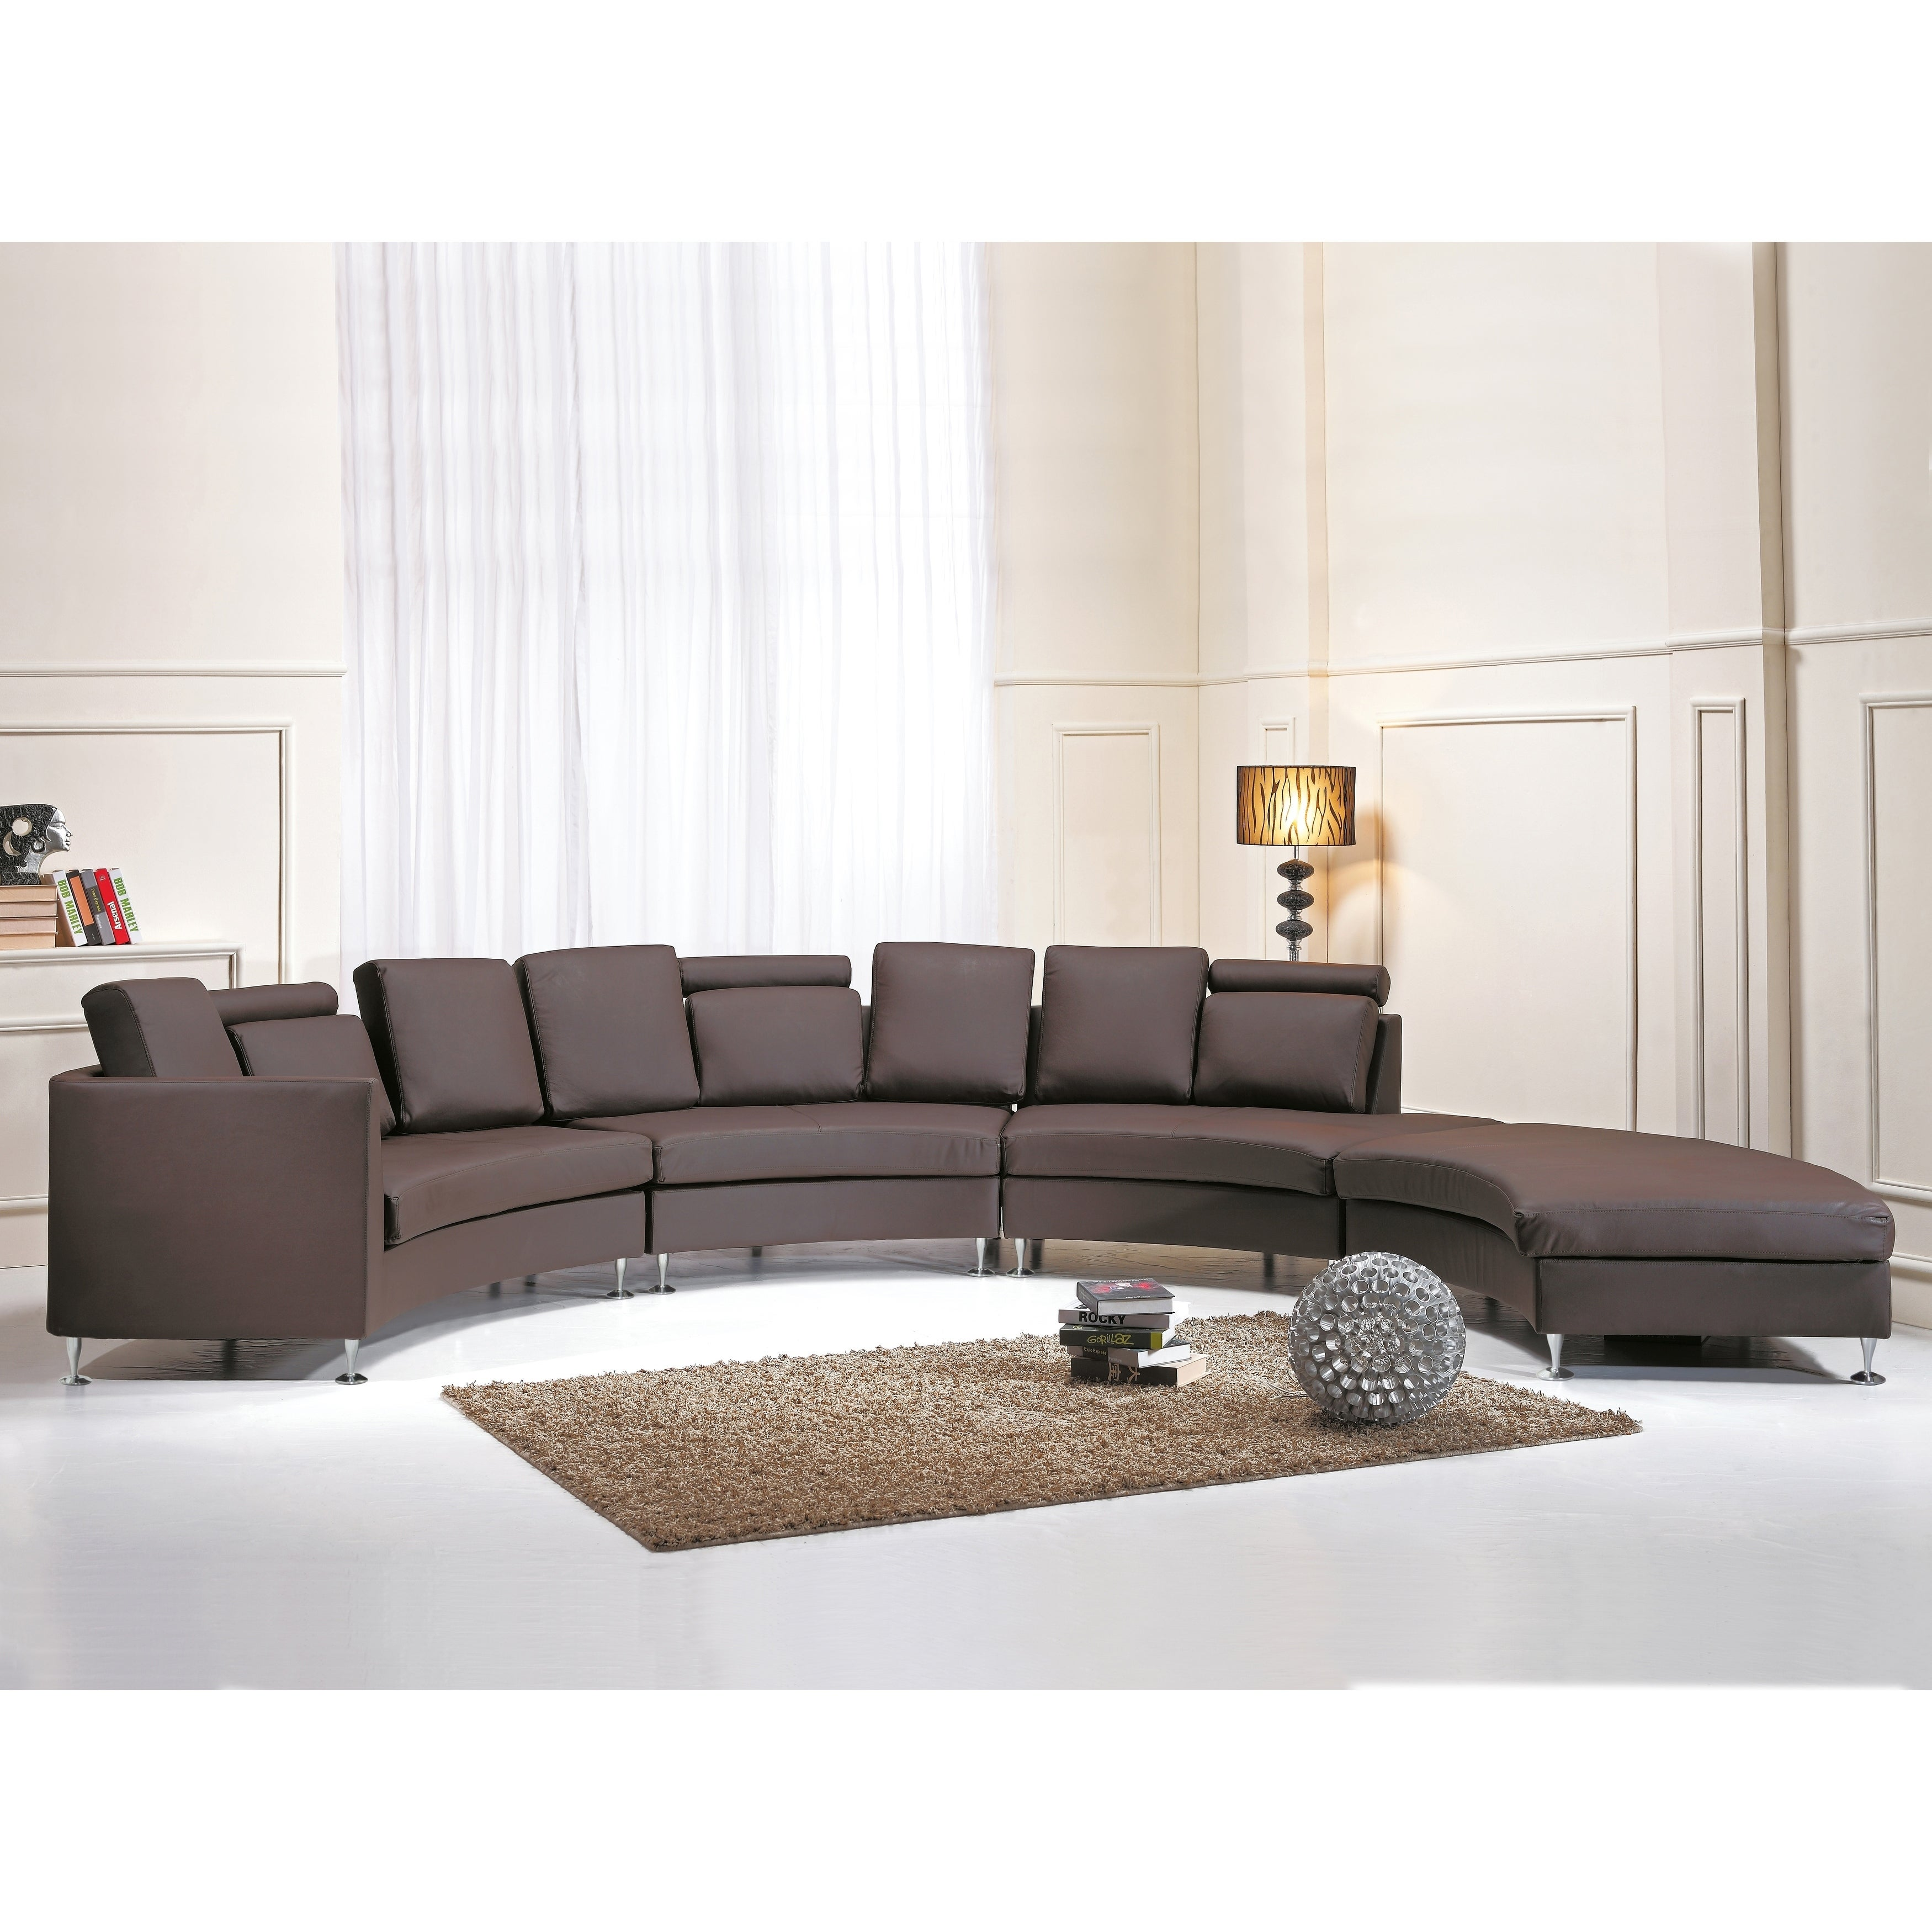 Shop Curved Sectional Sofa - Brown Leather ROTUNDE - Free Shipping ...